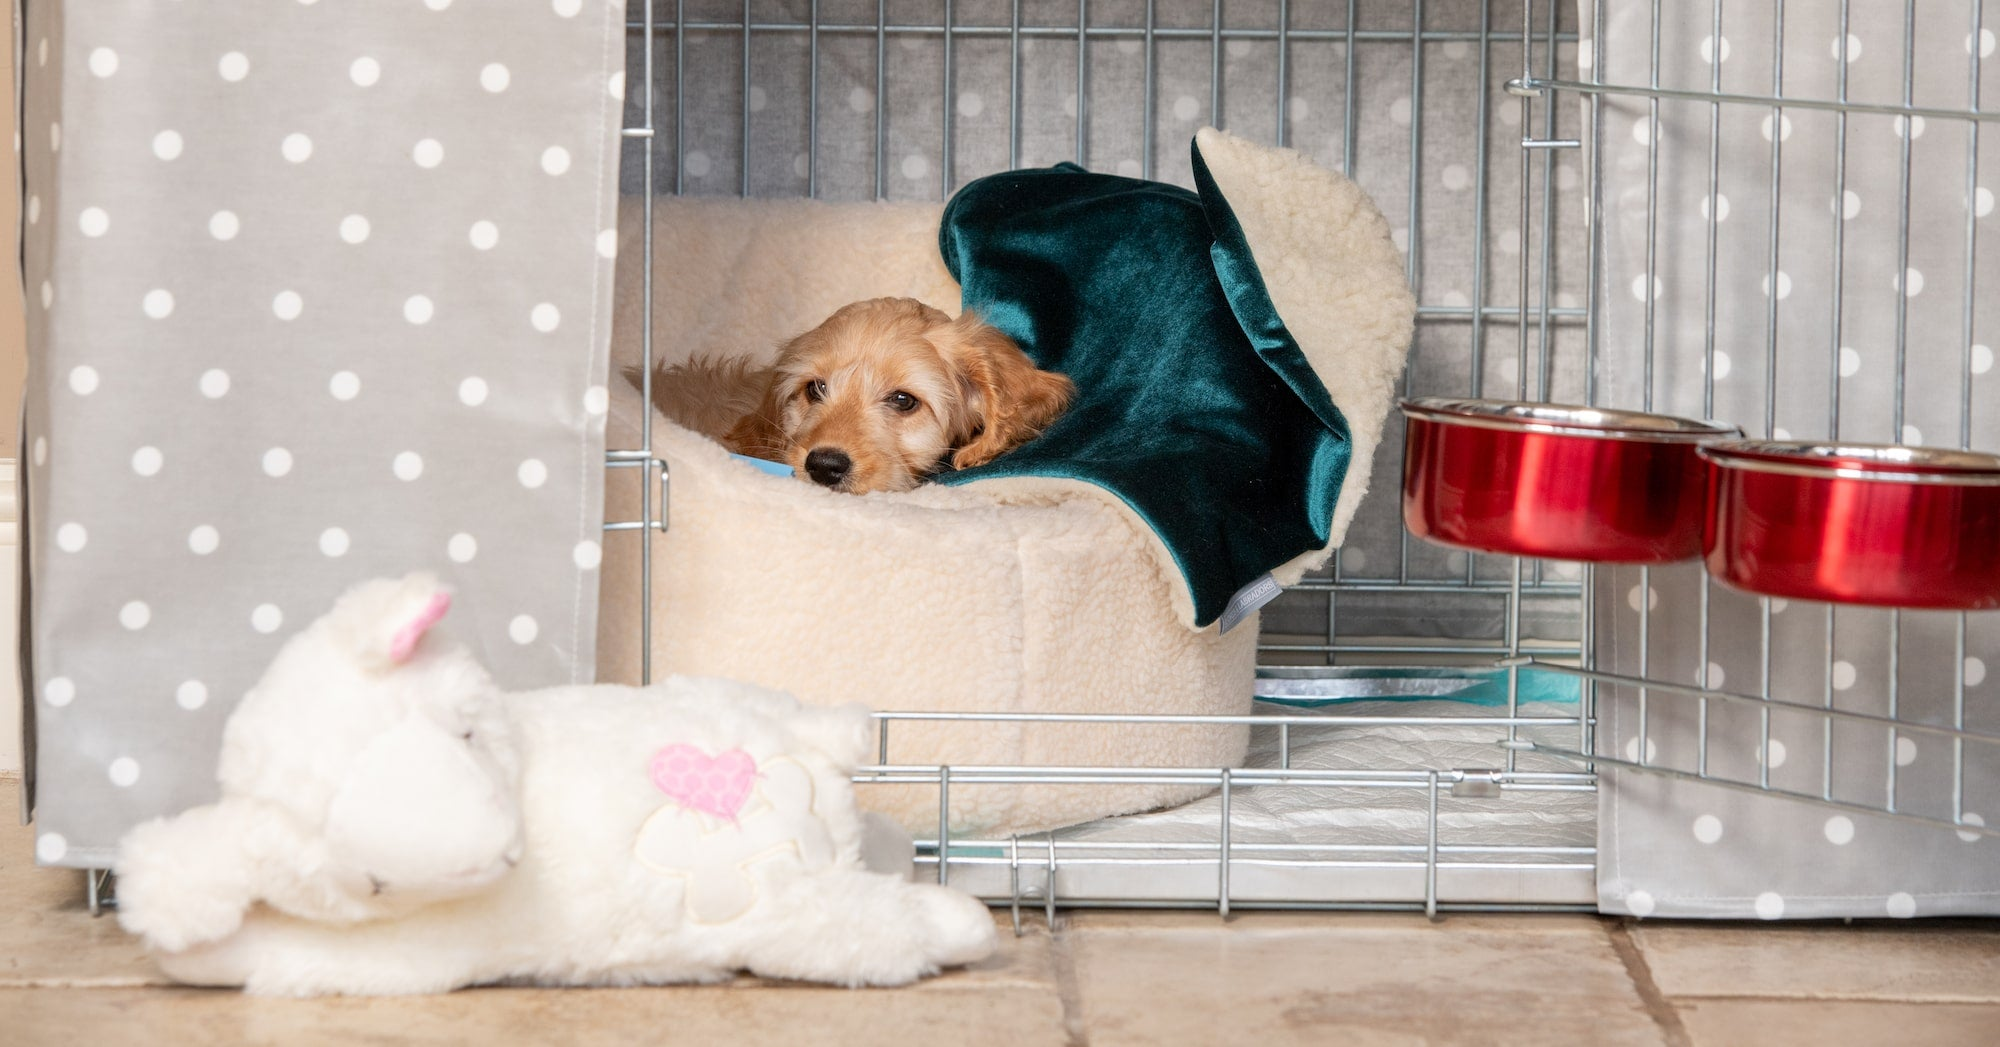 Cockapoo puppy in a dog crate with puppyy bed, blanket and water bowl